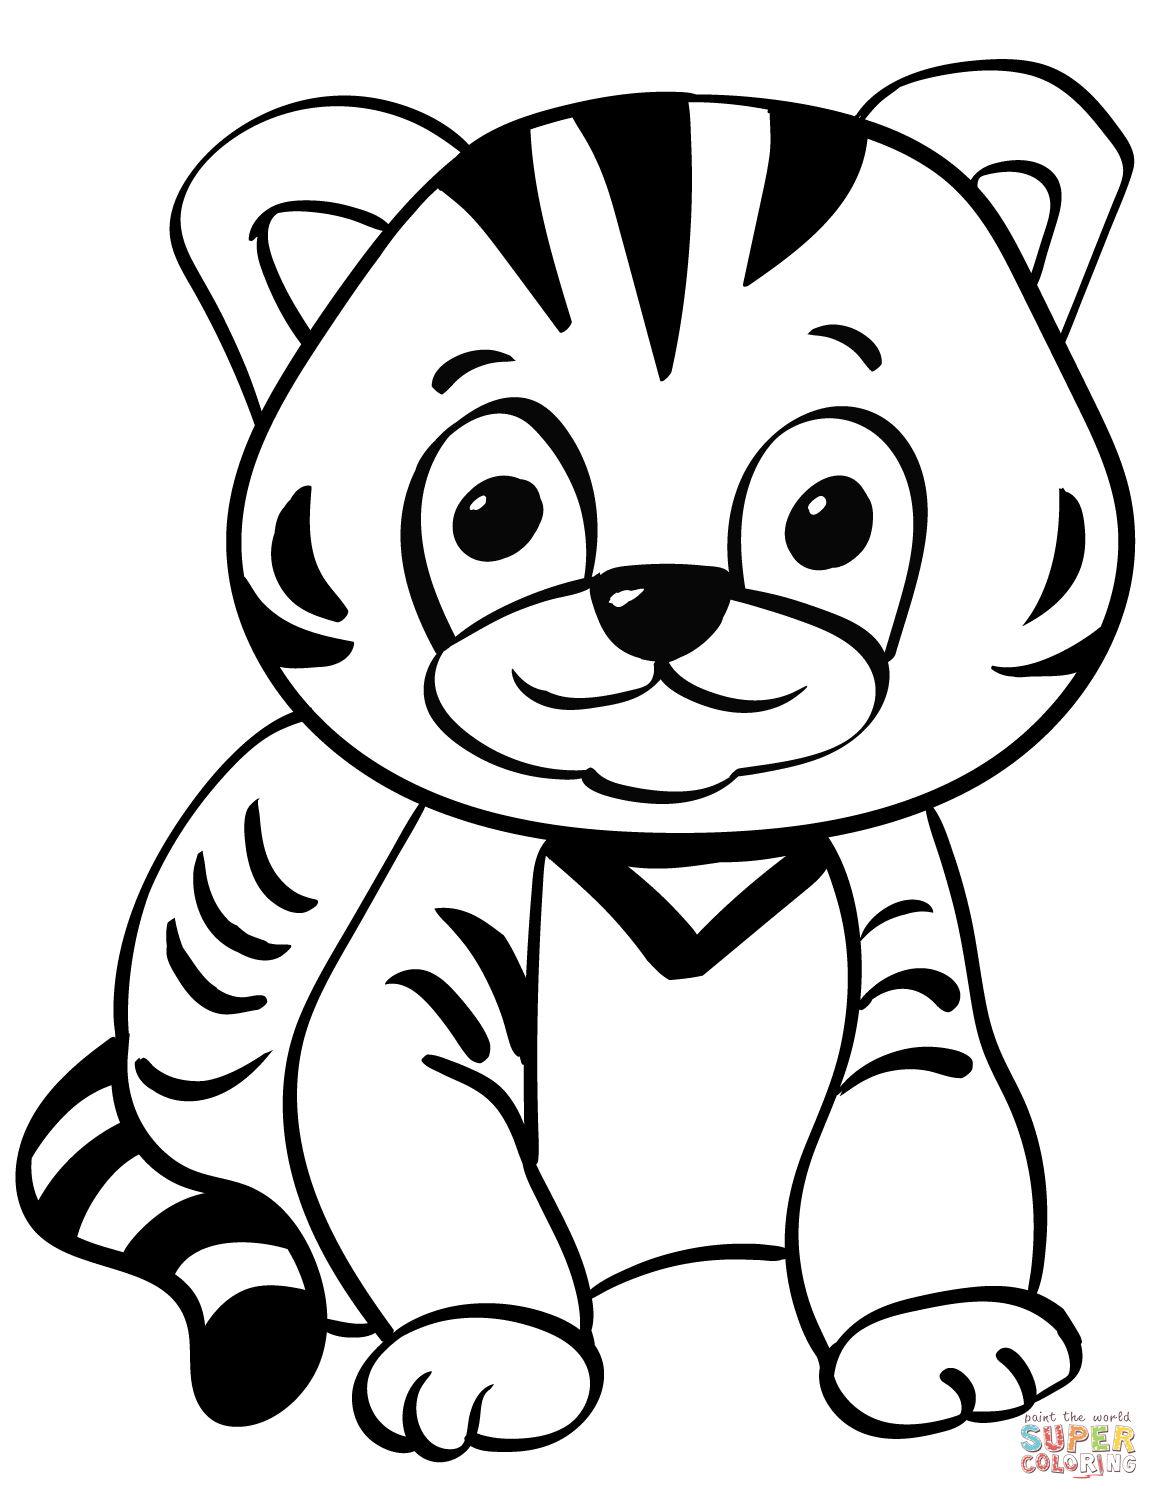 tiger cubs coloring pages pin on kids activity coloring pages coloring cubs tiger